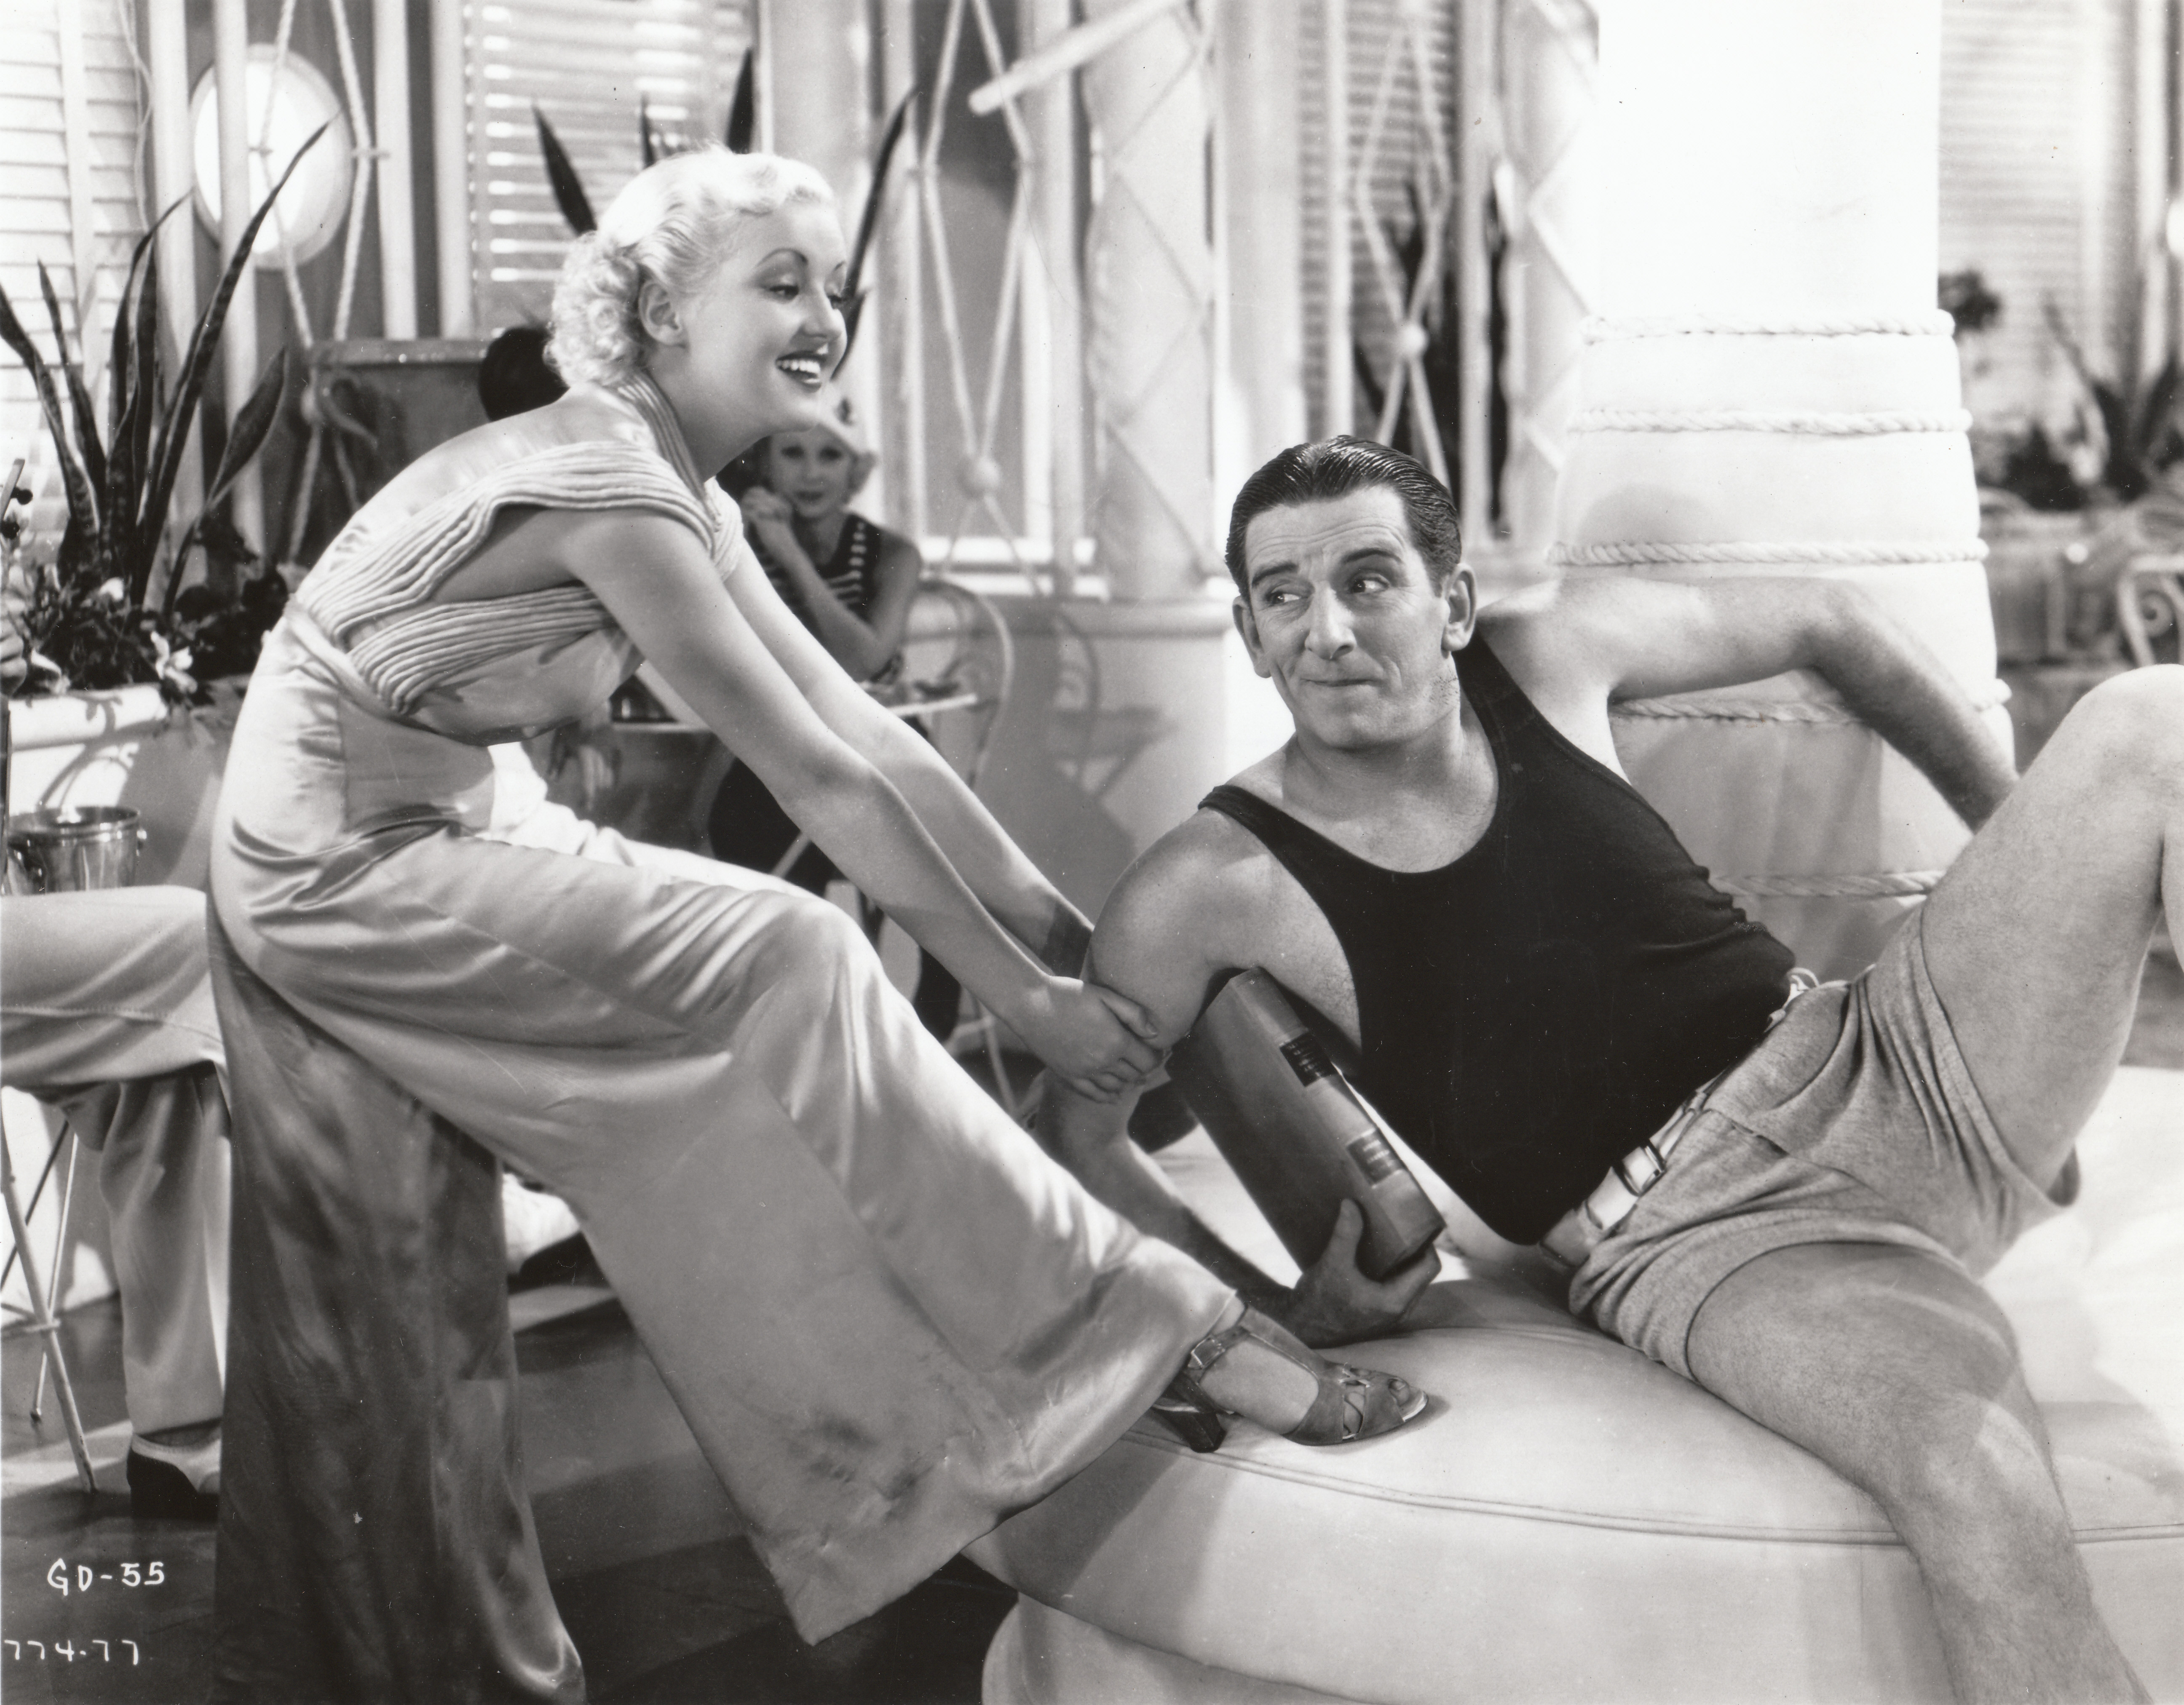 Betty Grable and Edward Everett Horton in The Gay Divorcee (1934)